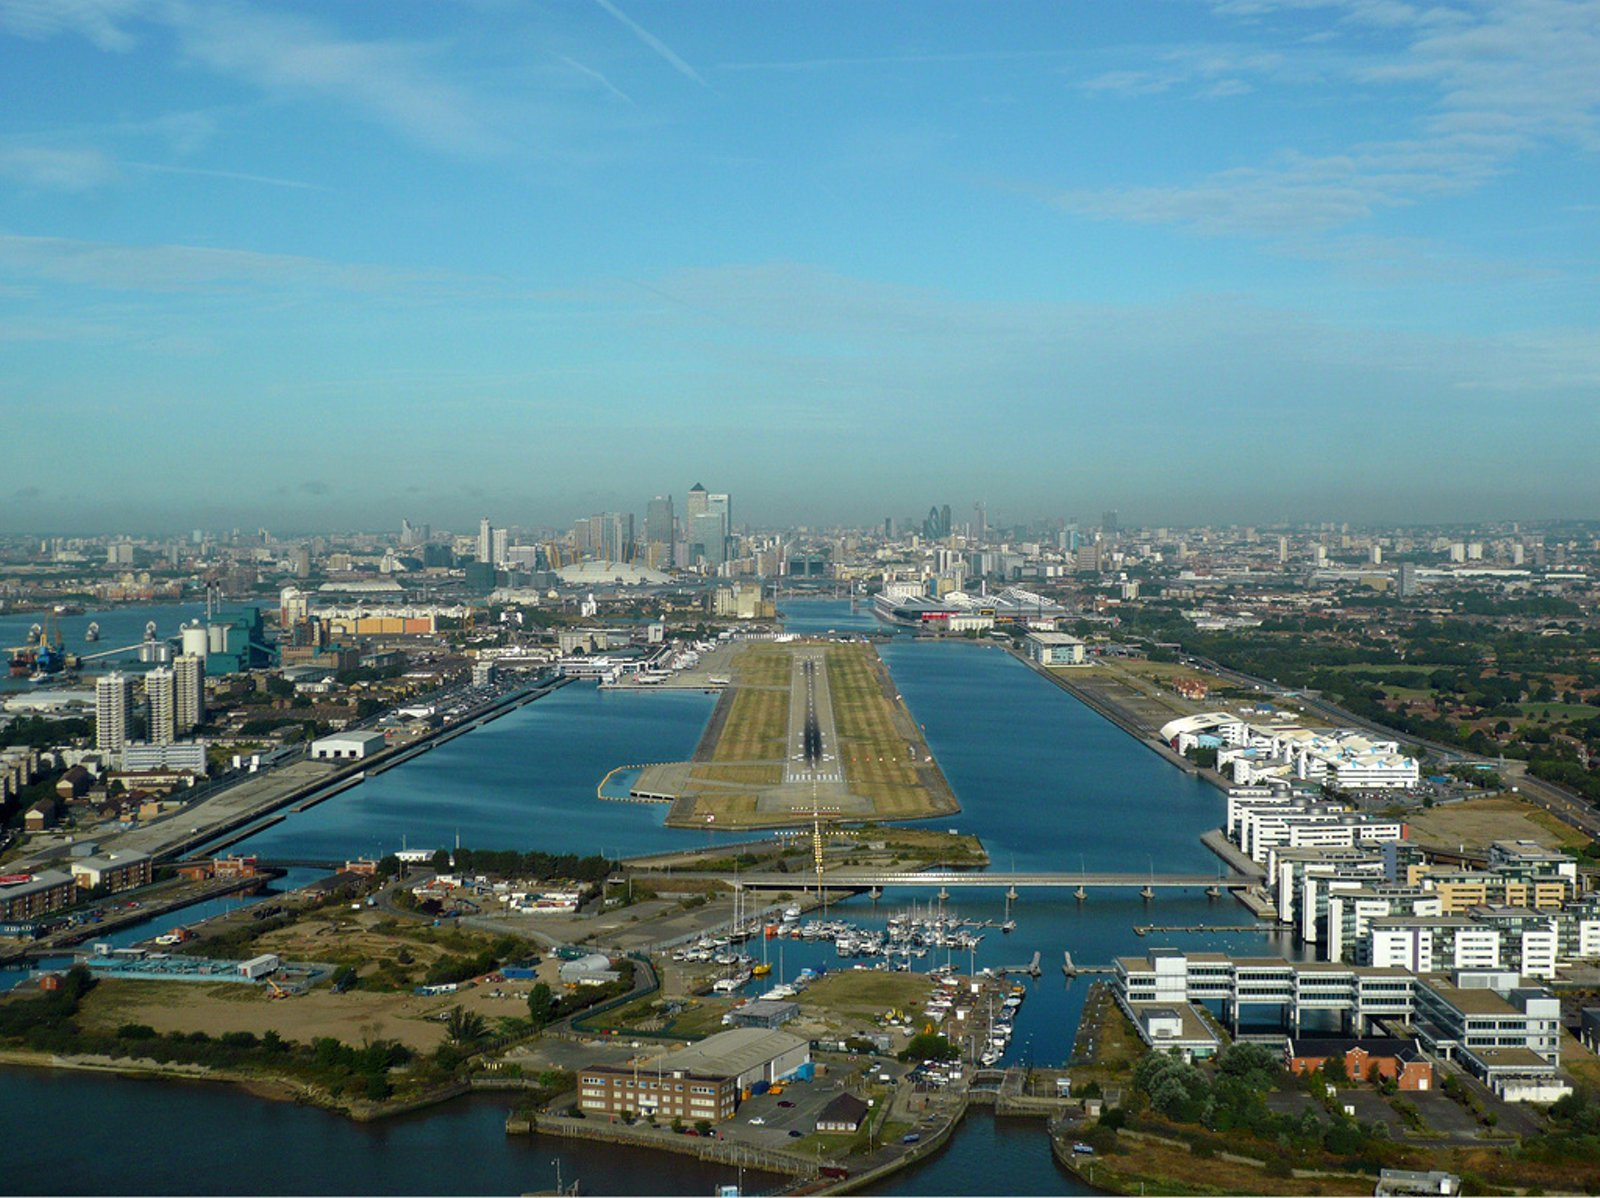 london_city_airport_zwart.jpg